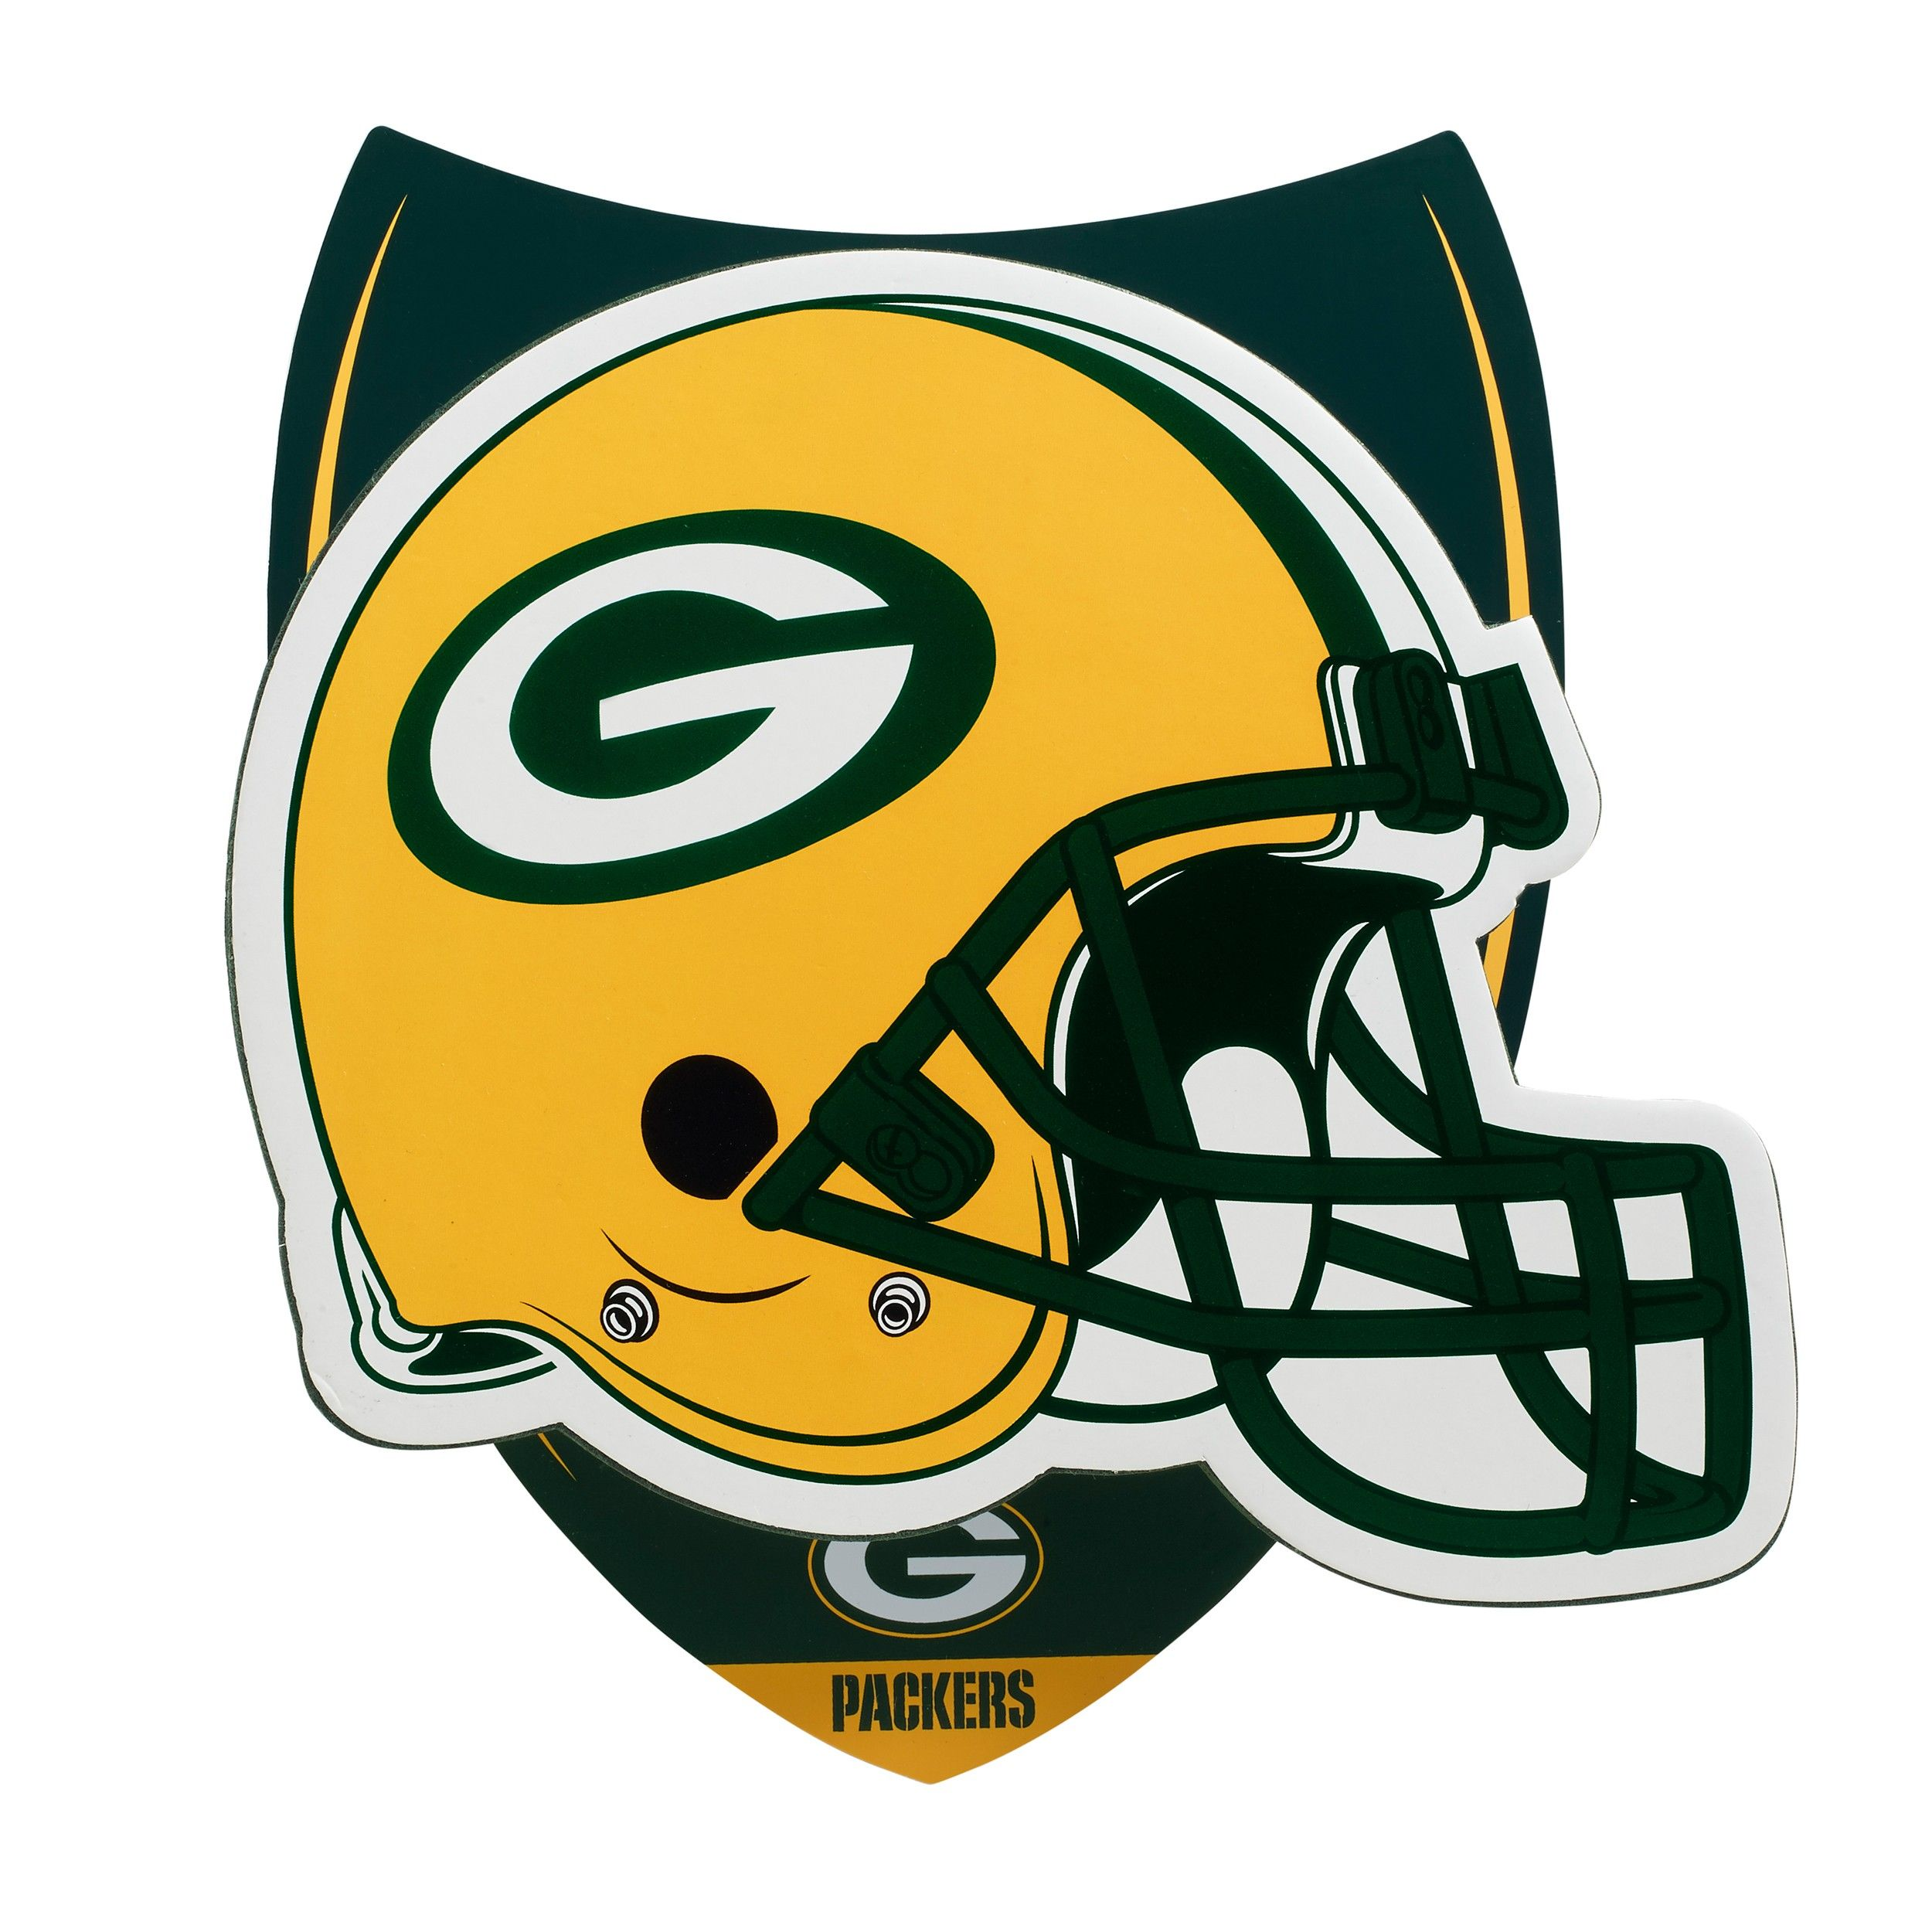 911456a81ce Pin by Sarah pfarr on every where packers